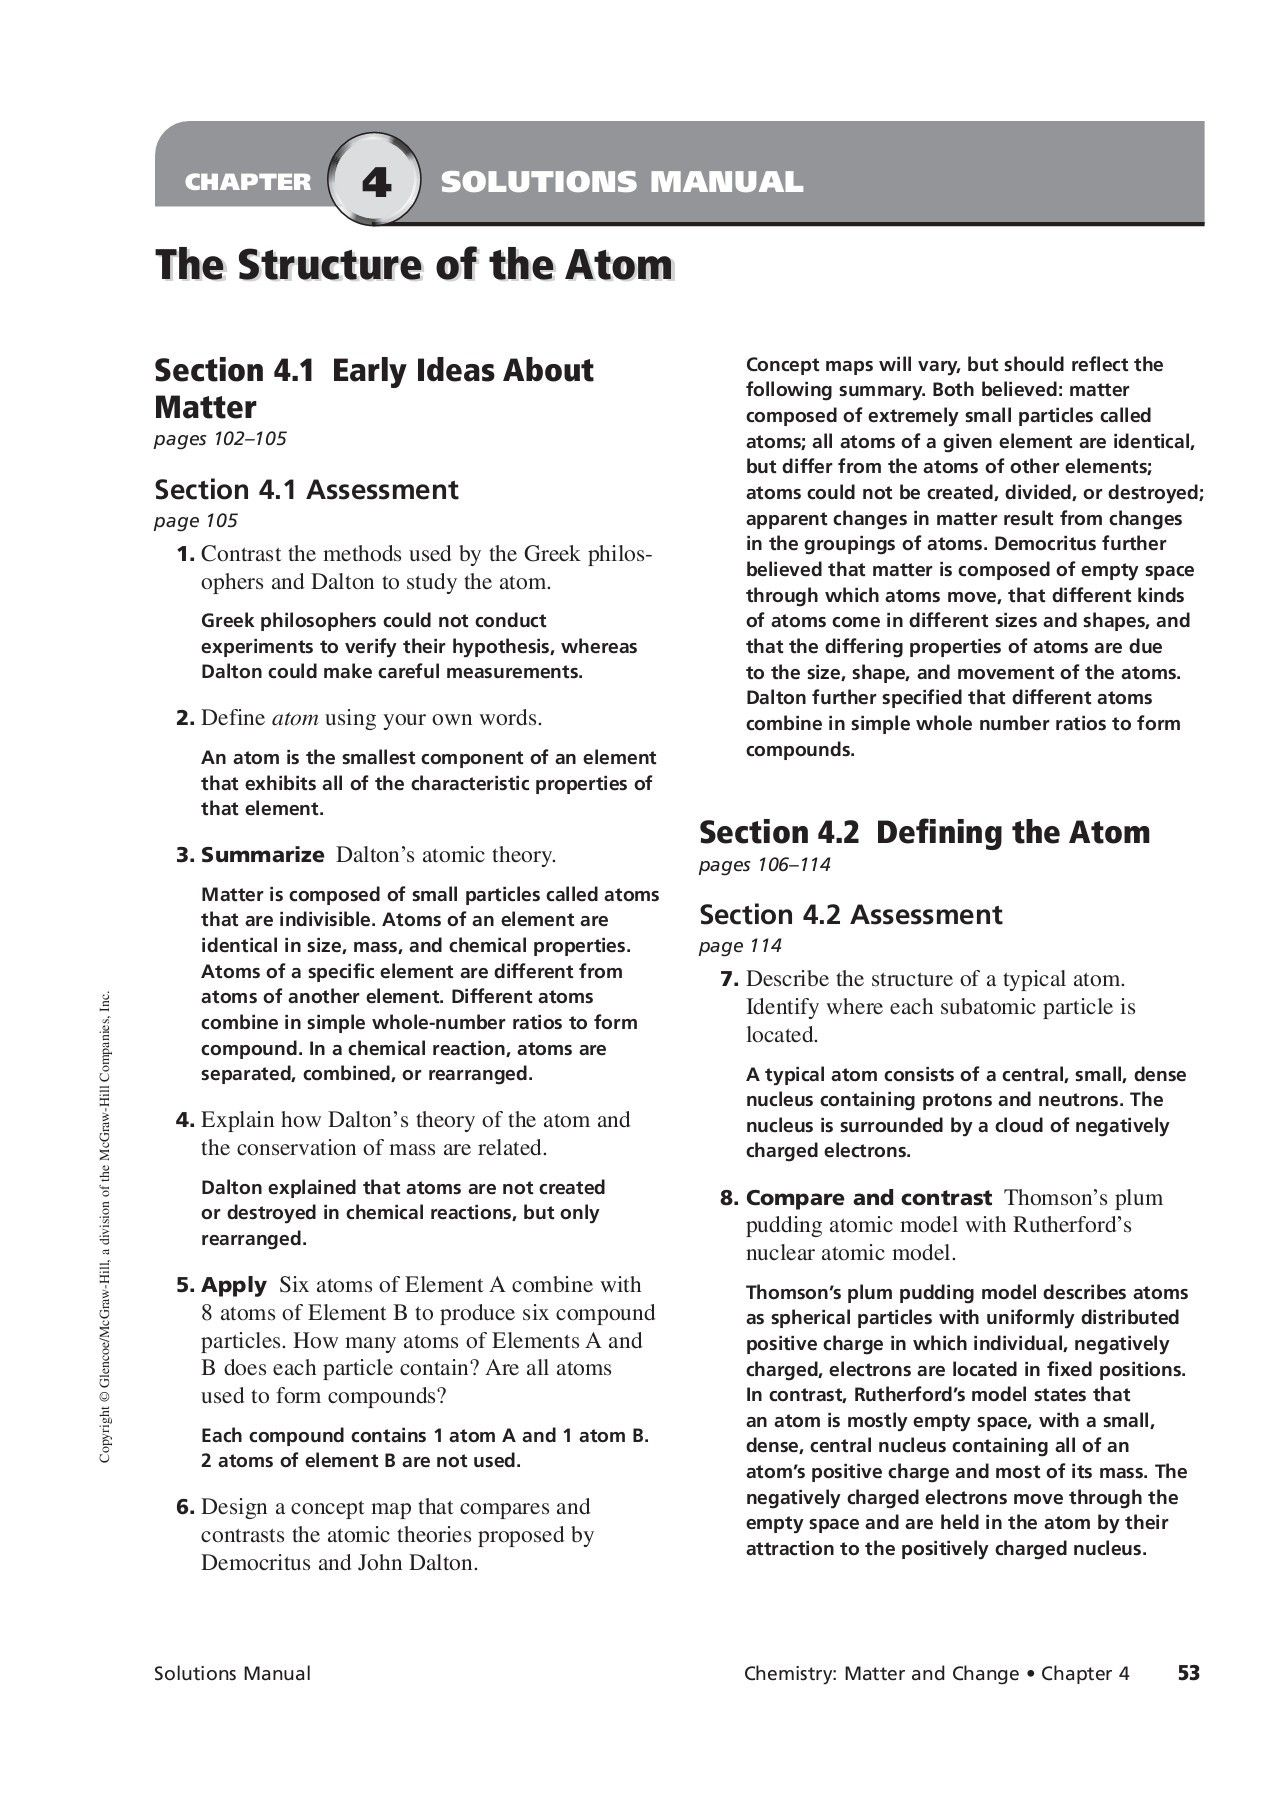 Copyright Glencoe Mcgraw Hill A Division Of The Mcgraw